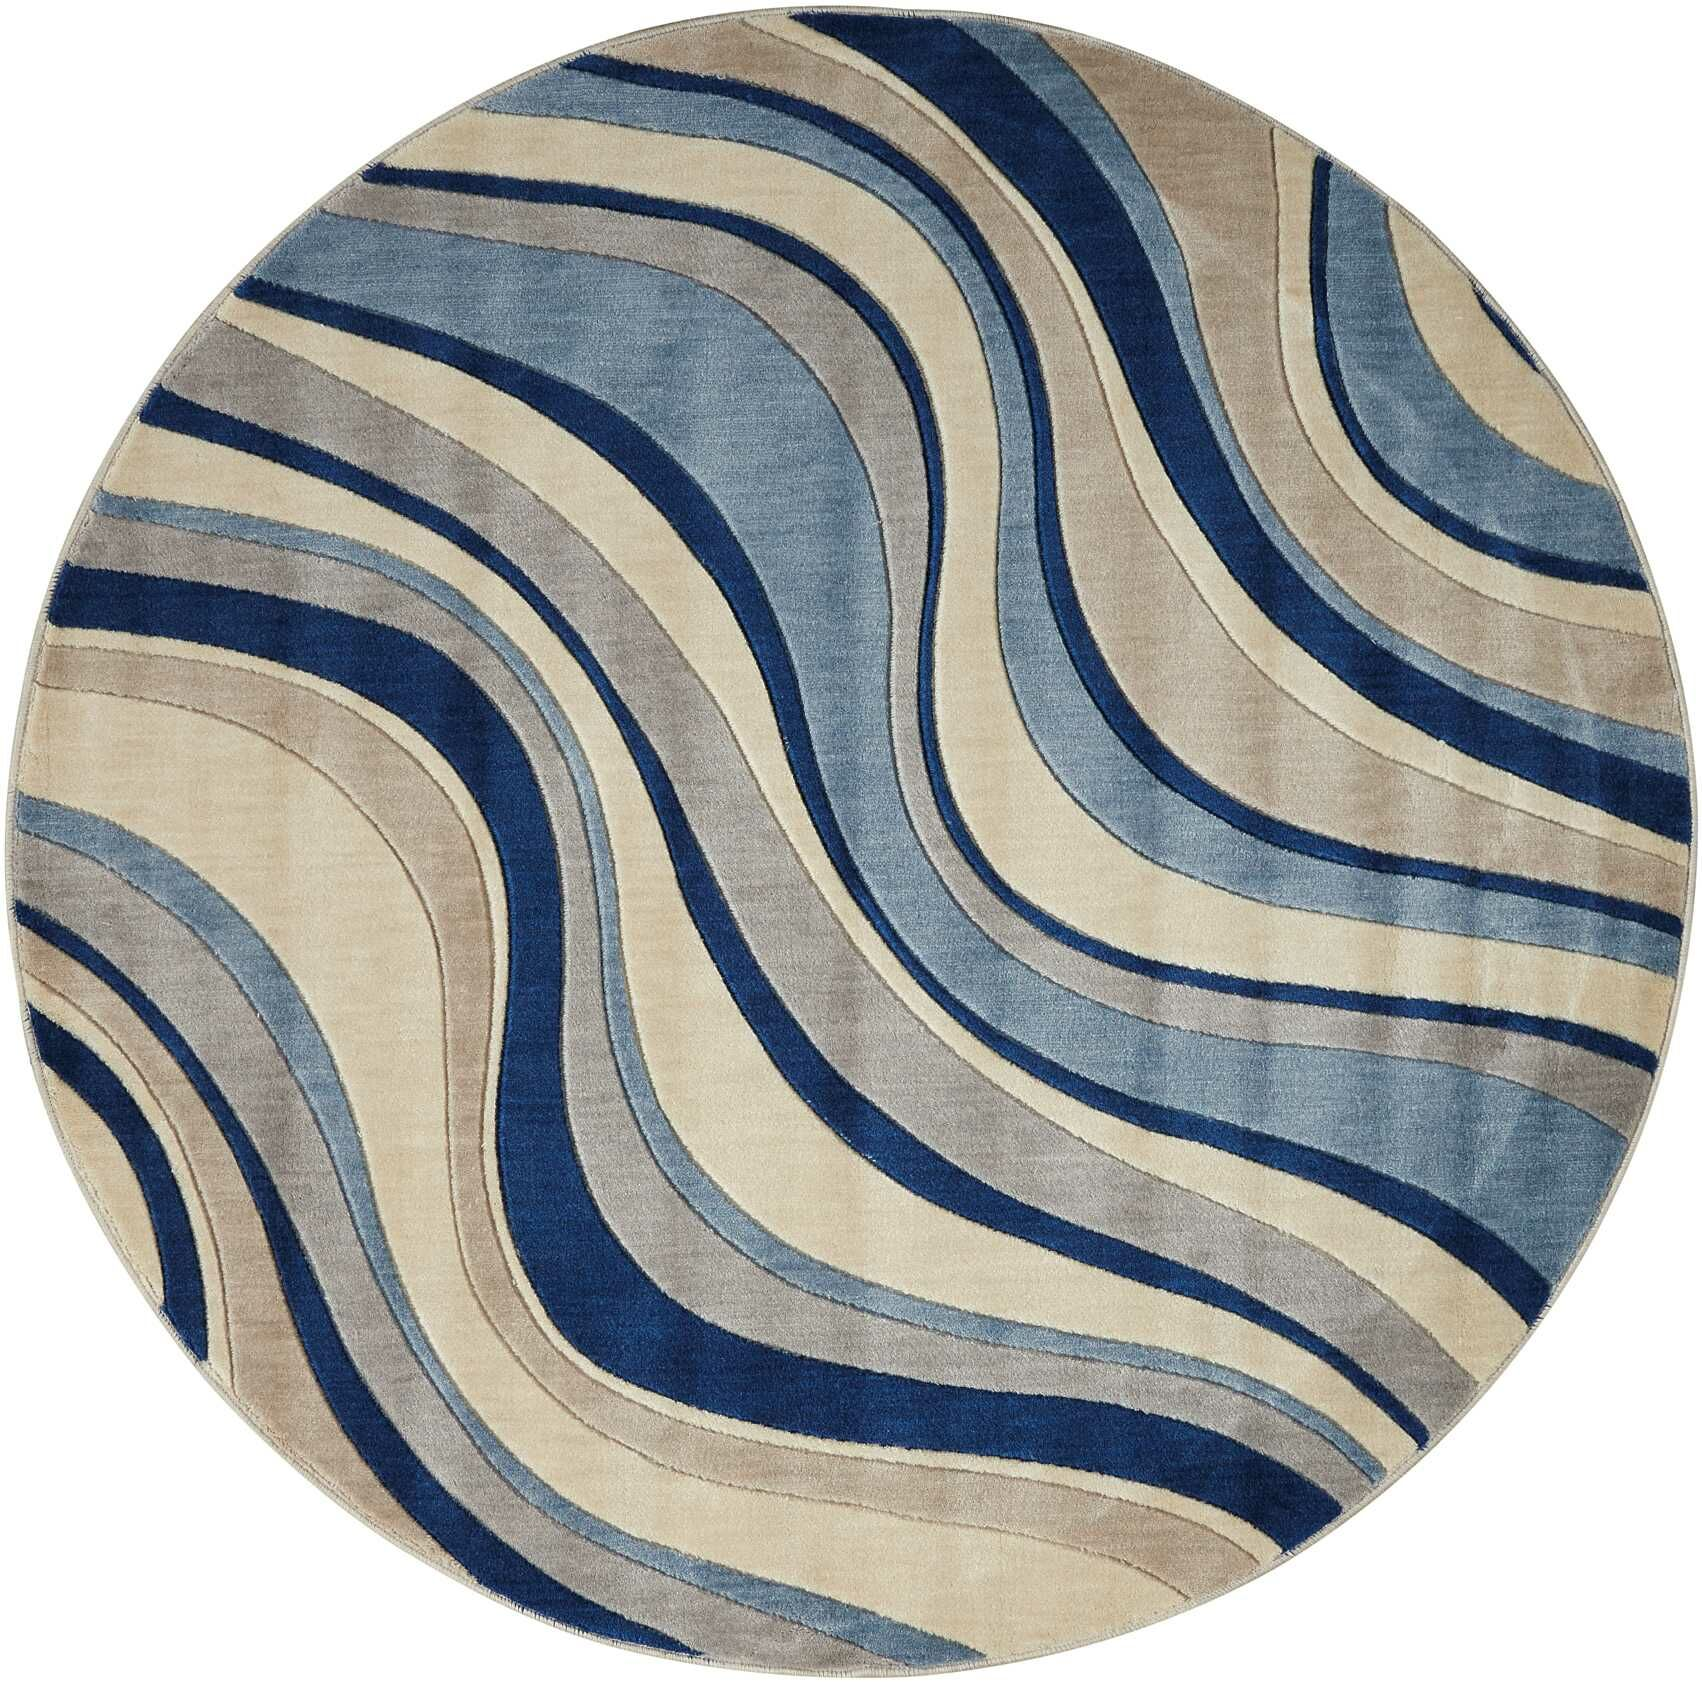 Cherell Ivory/Blue Area Rug Rug Size: Round 5'6